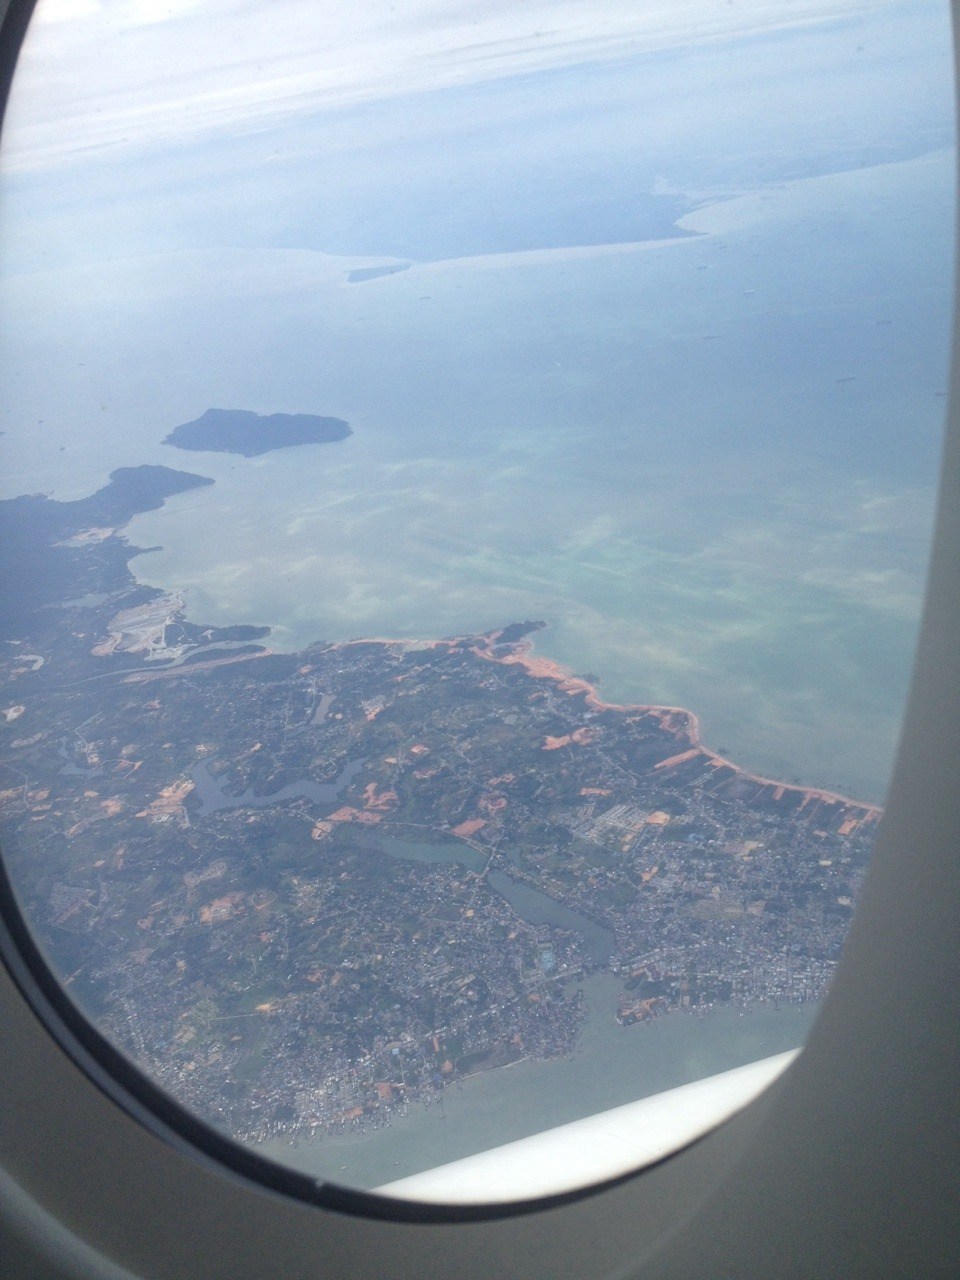 Singapore from the airplane. Jun 19th, 2014